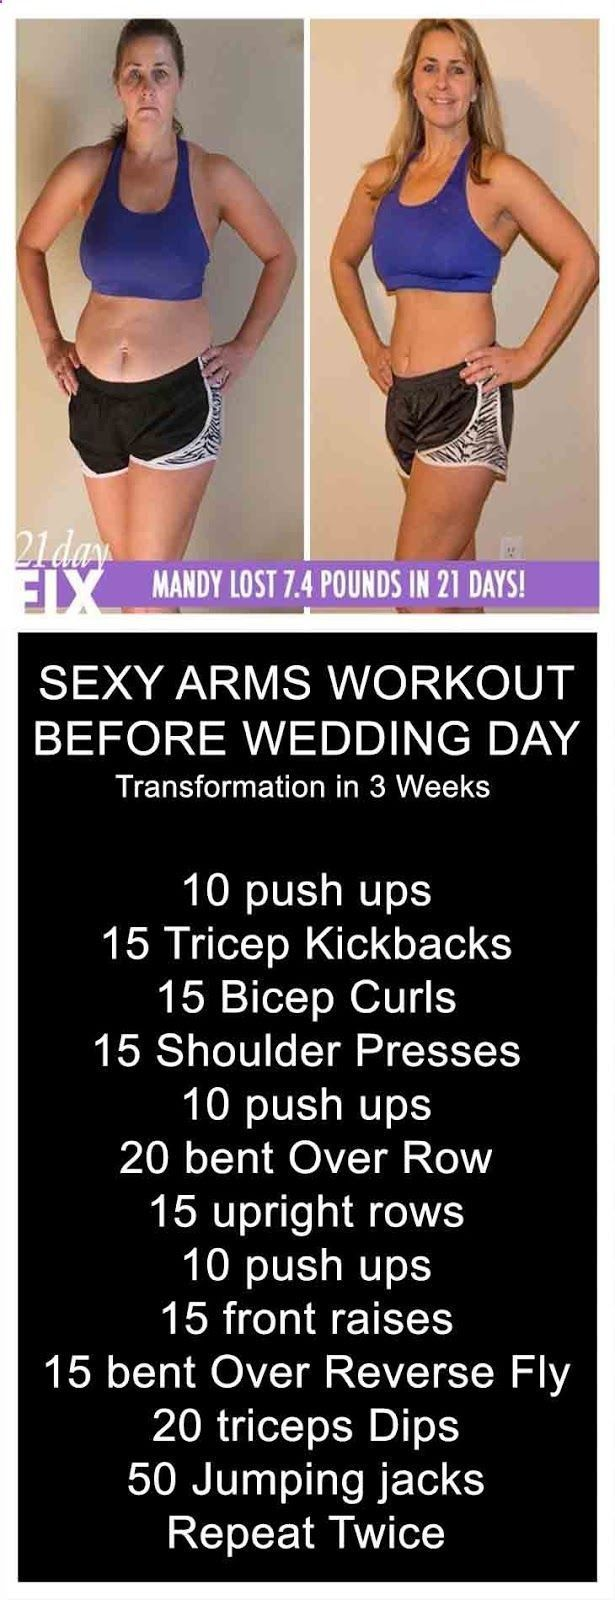 3 Week Diet Loss Weight - SEXY ARMS WORKOUT BEFORE WEDDING DAY and learn 10 Reasons To Decrease Sugar Intake From Your Diet   3 week diet   fitness   workout plan   quick fat loss   weight loss guide   inspiration   THE 3 WEEK DIET is a revolutionary new diet system that not only guarantees to help you lose weight — it promises to help you lose more weight — all body fat — faster than anything else you've ever tried. #quickweddingplanning